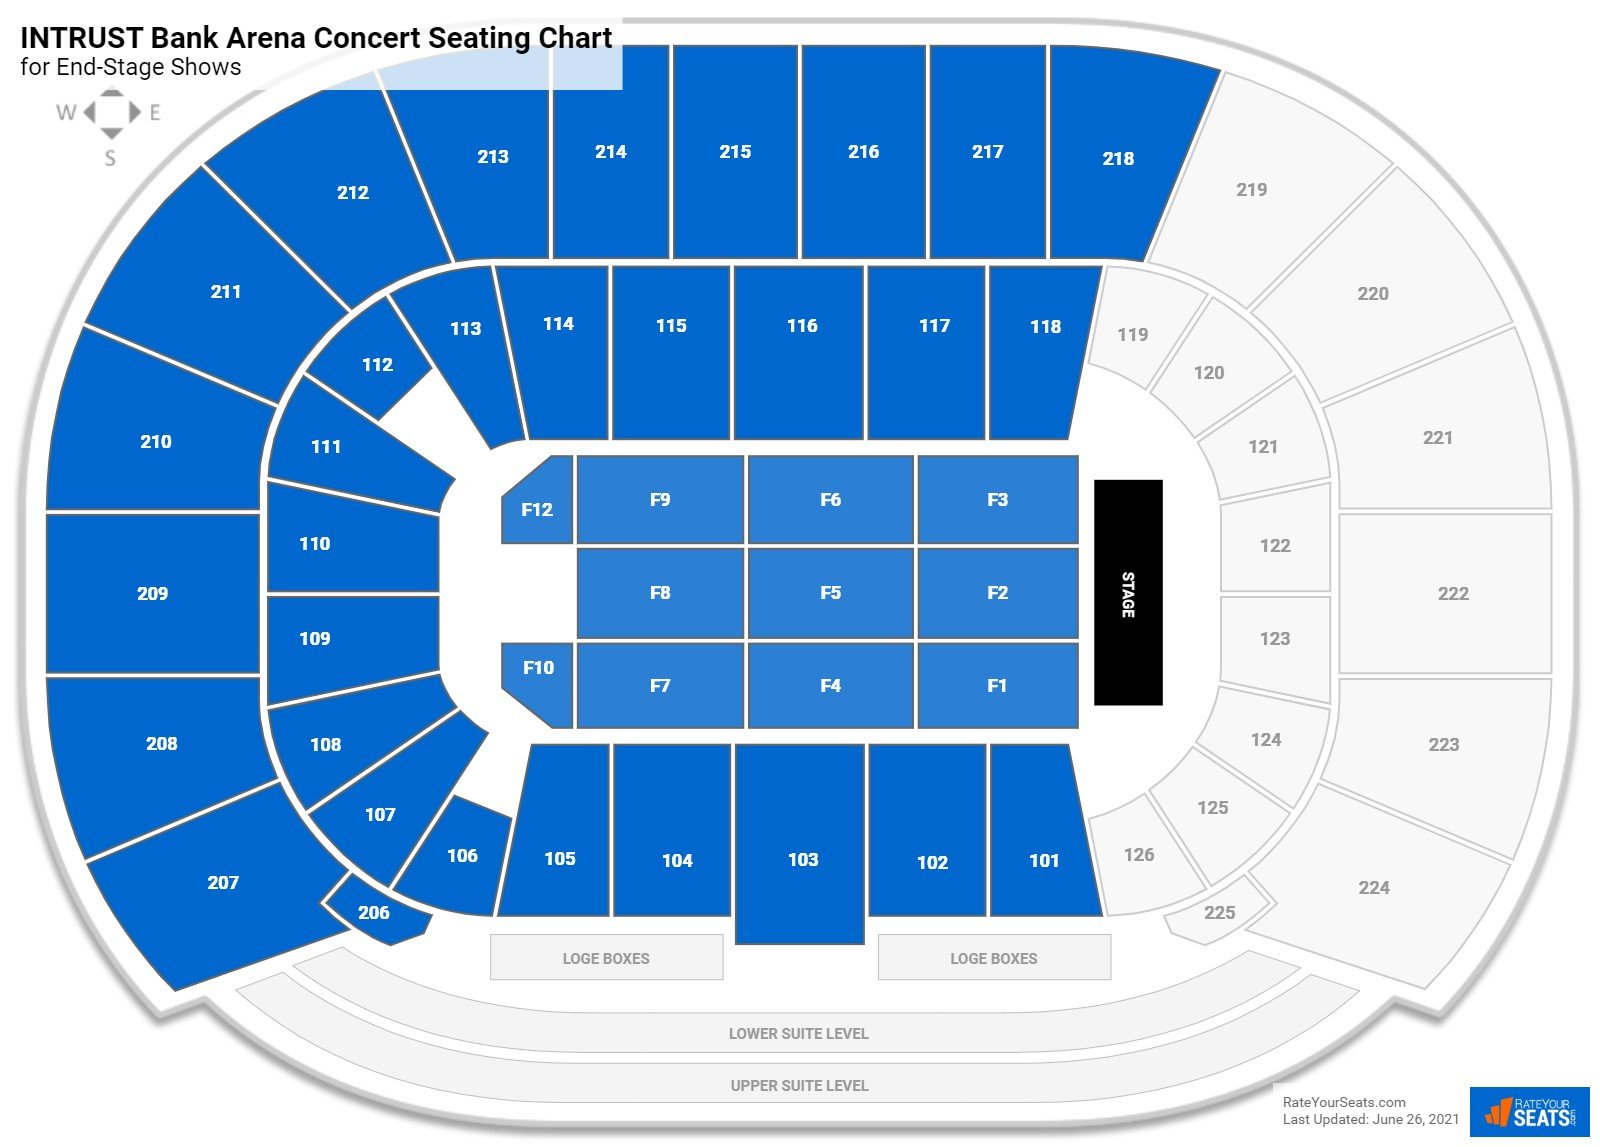 INTRUST Bank Arena Seating Chart for Concerts